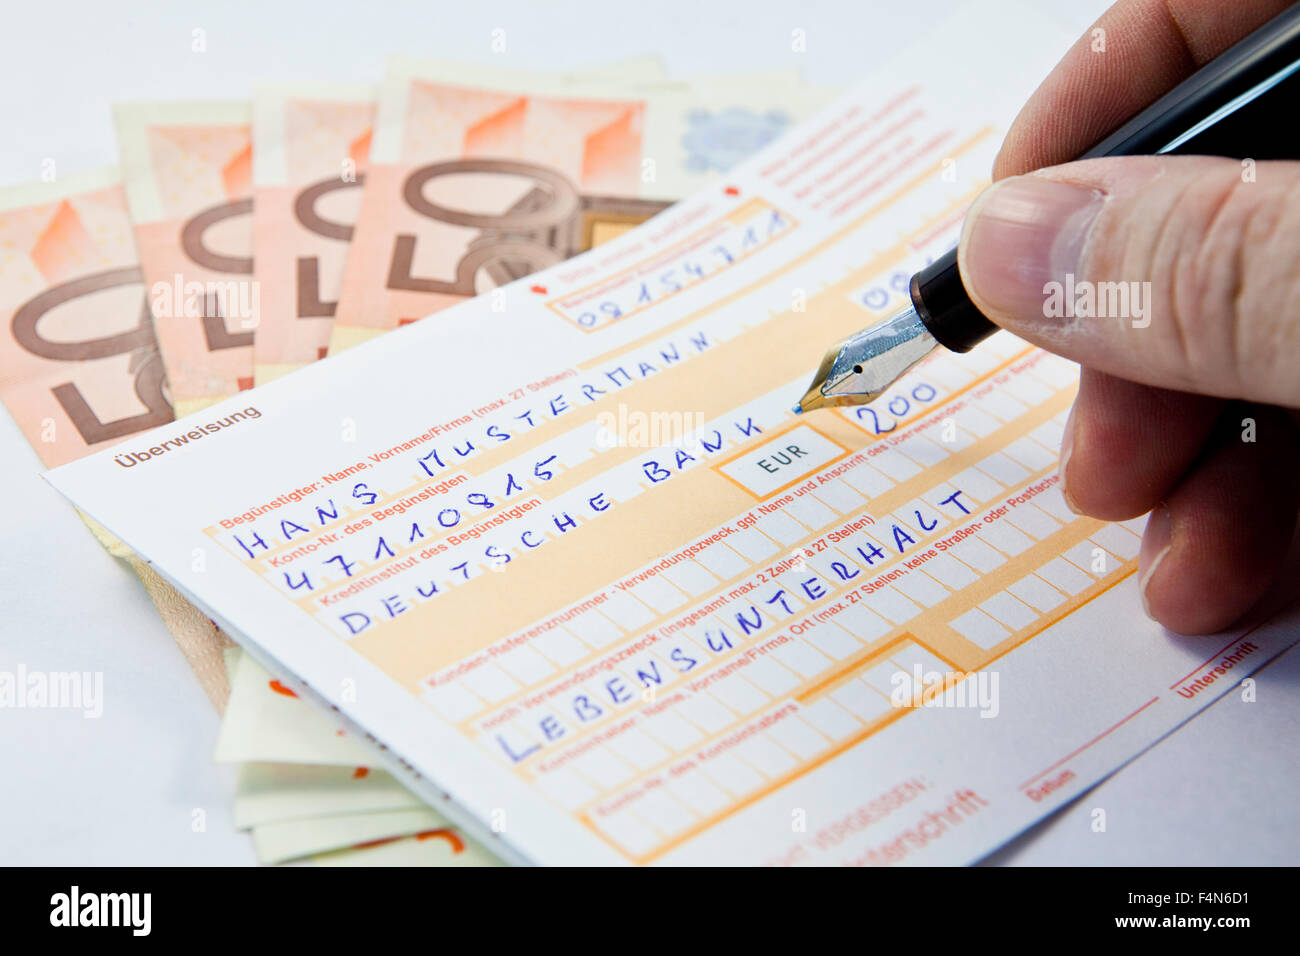 cash slip stock photos cash slip stock images alamy